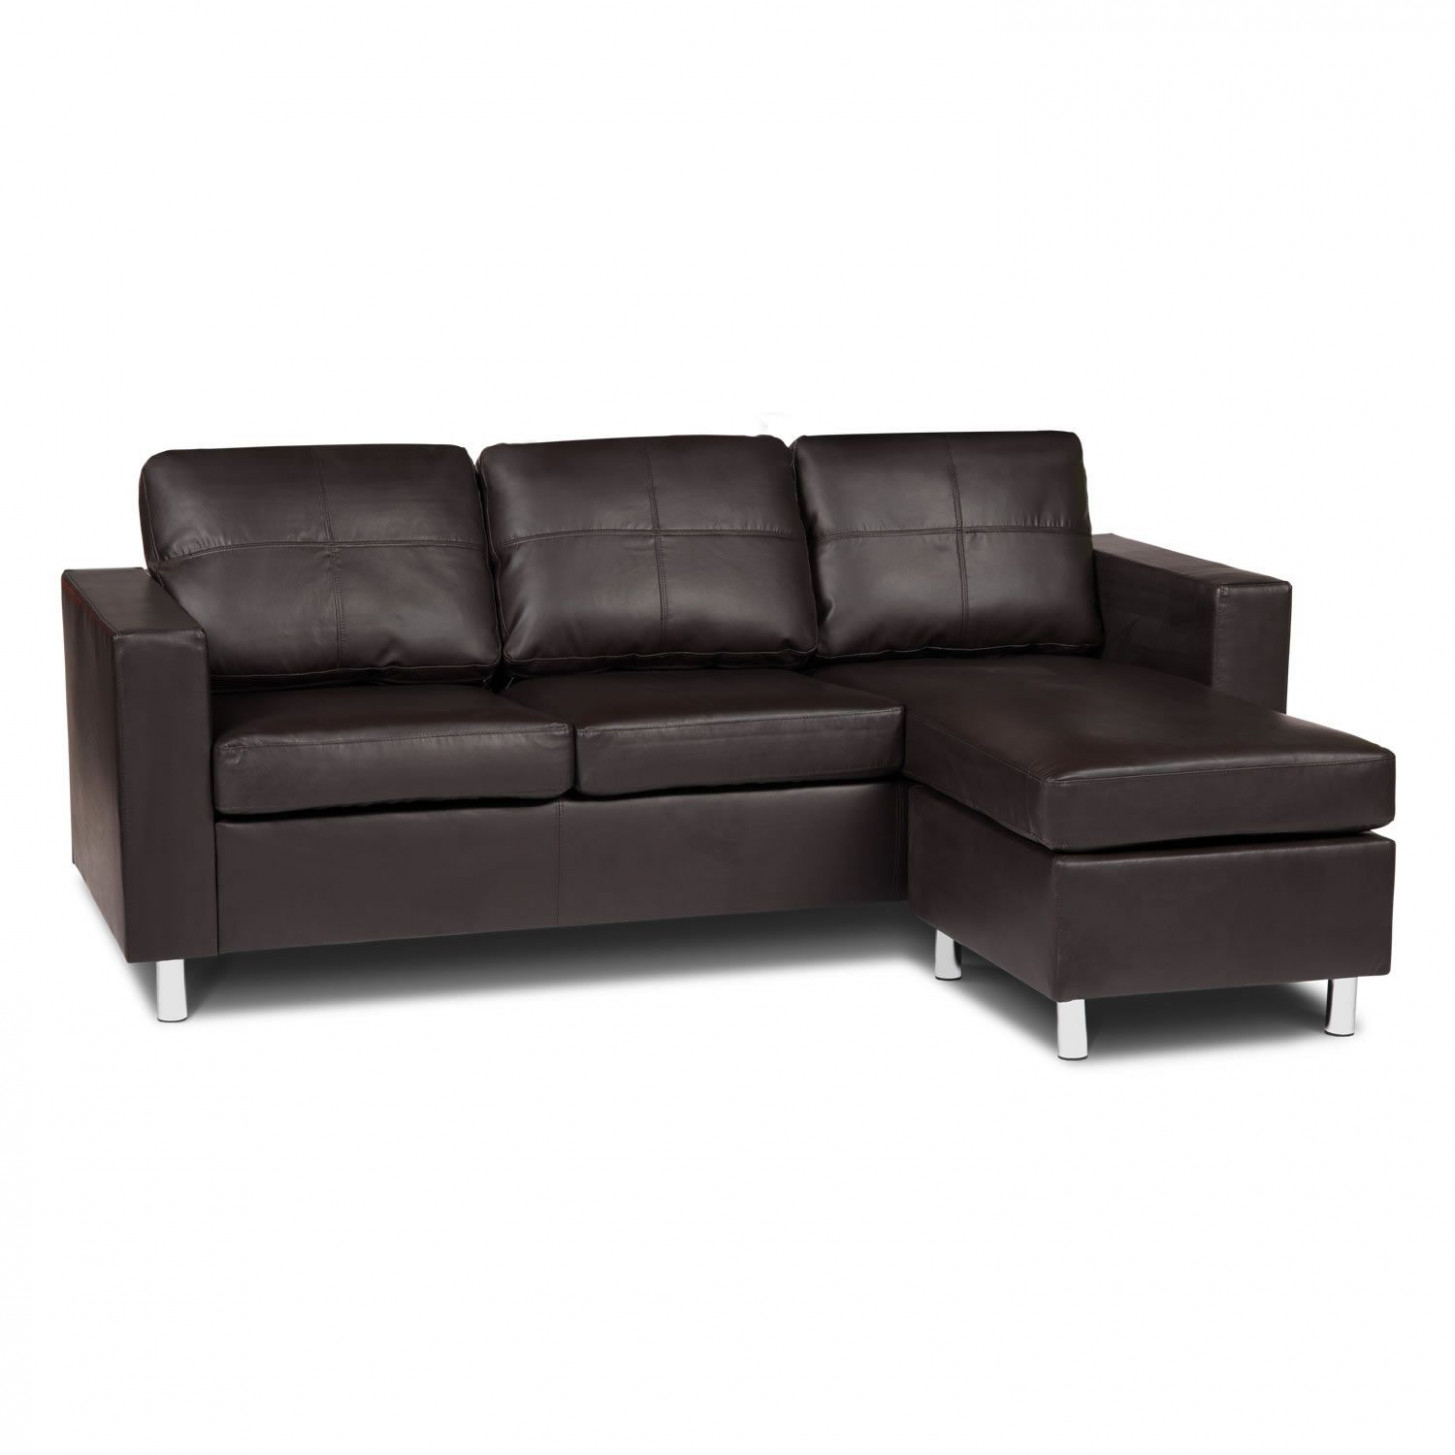 9 Leather Corner Sofa Quick Delivery   Home Design With Regard To Leather Corner Sofas (View 8 of 15)